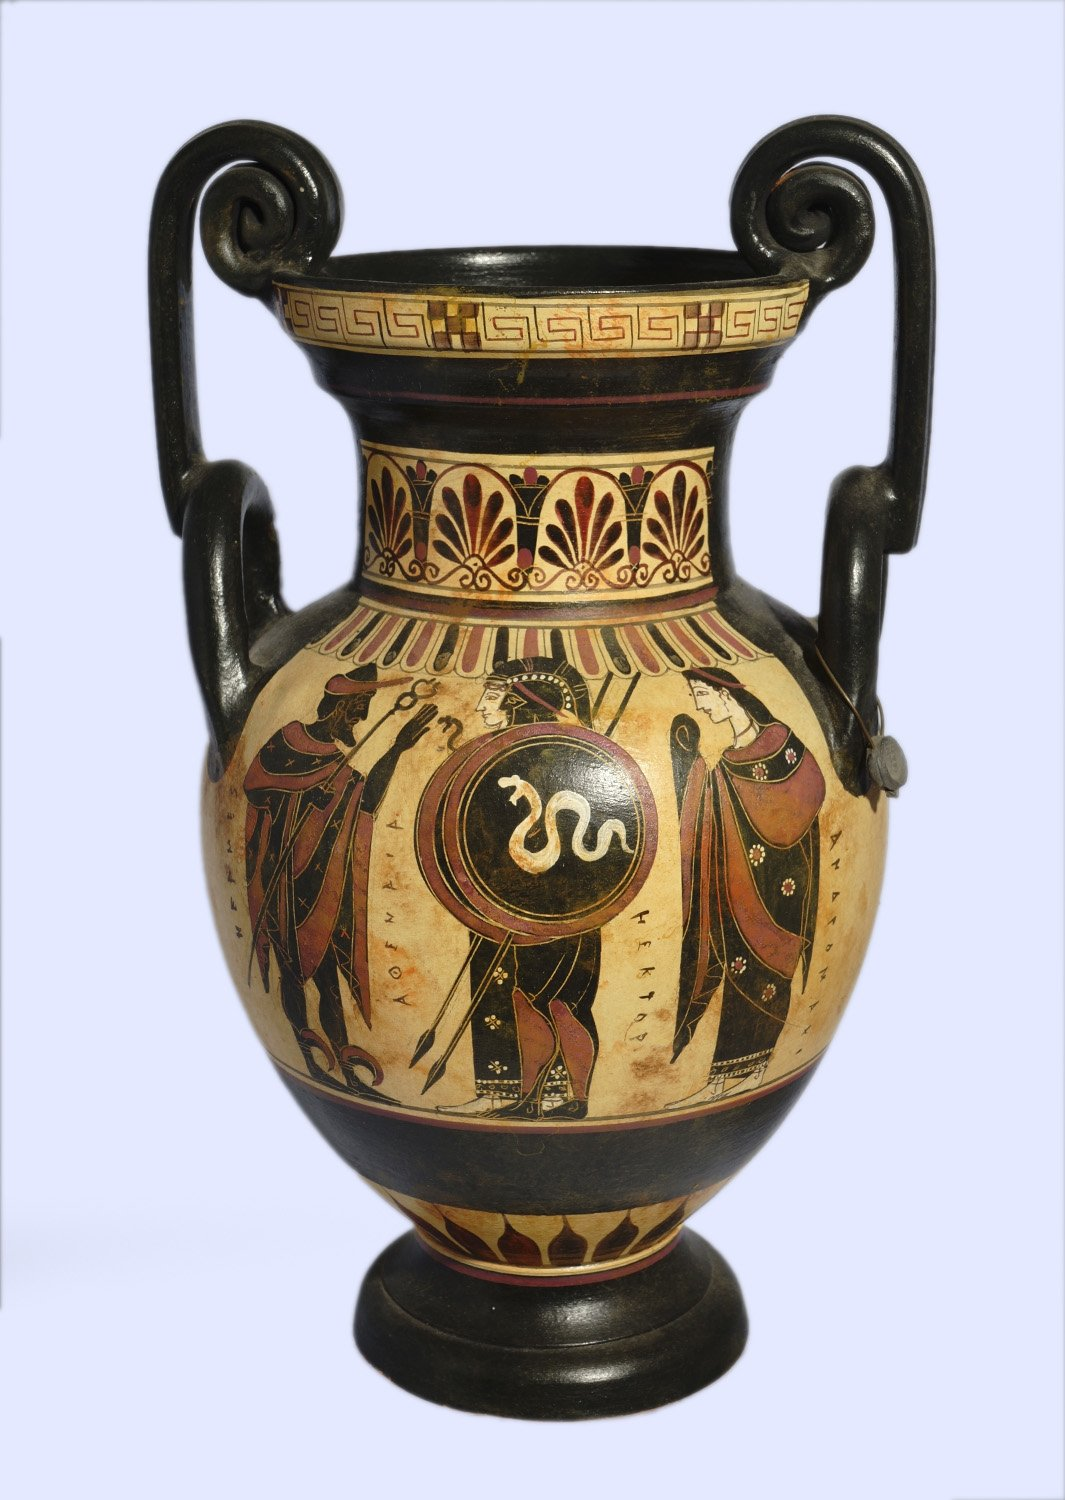 Archaic black-figure amphora with Hermes, Athena, Hector and Andromache